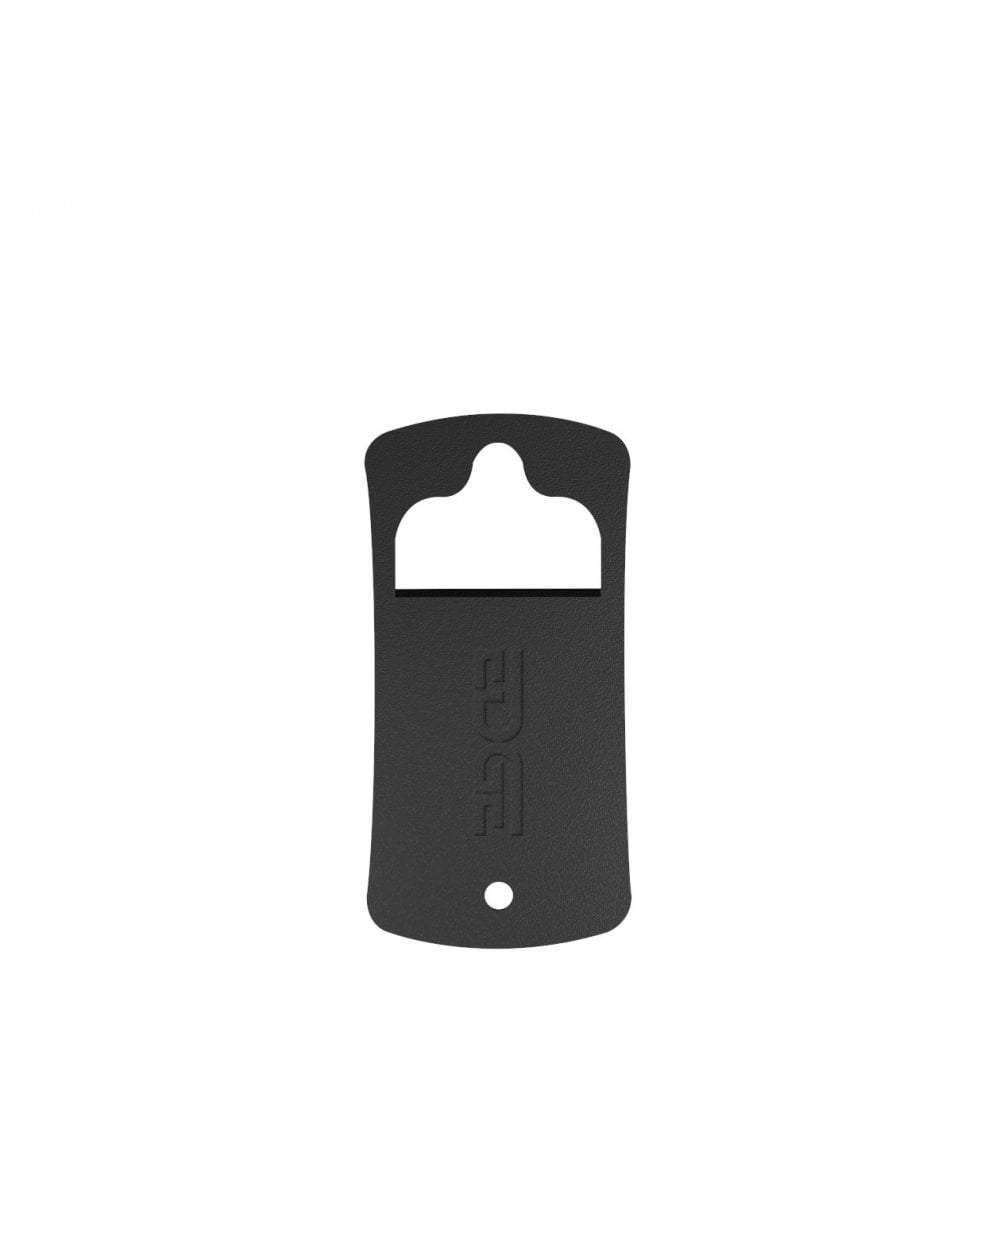 Shortfill Bottle Opener Tool